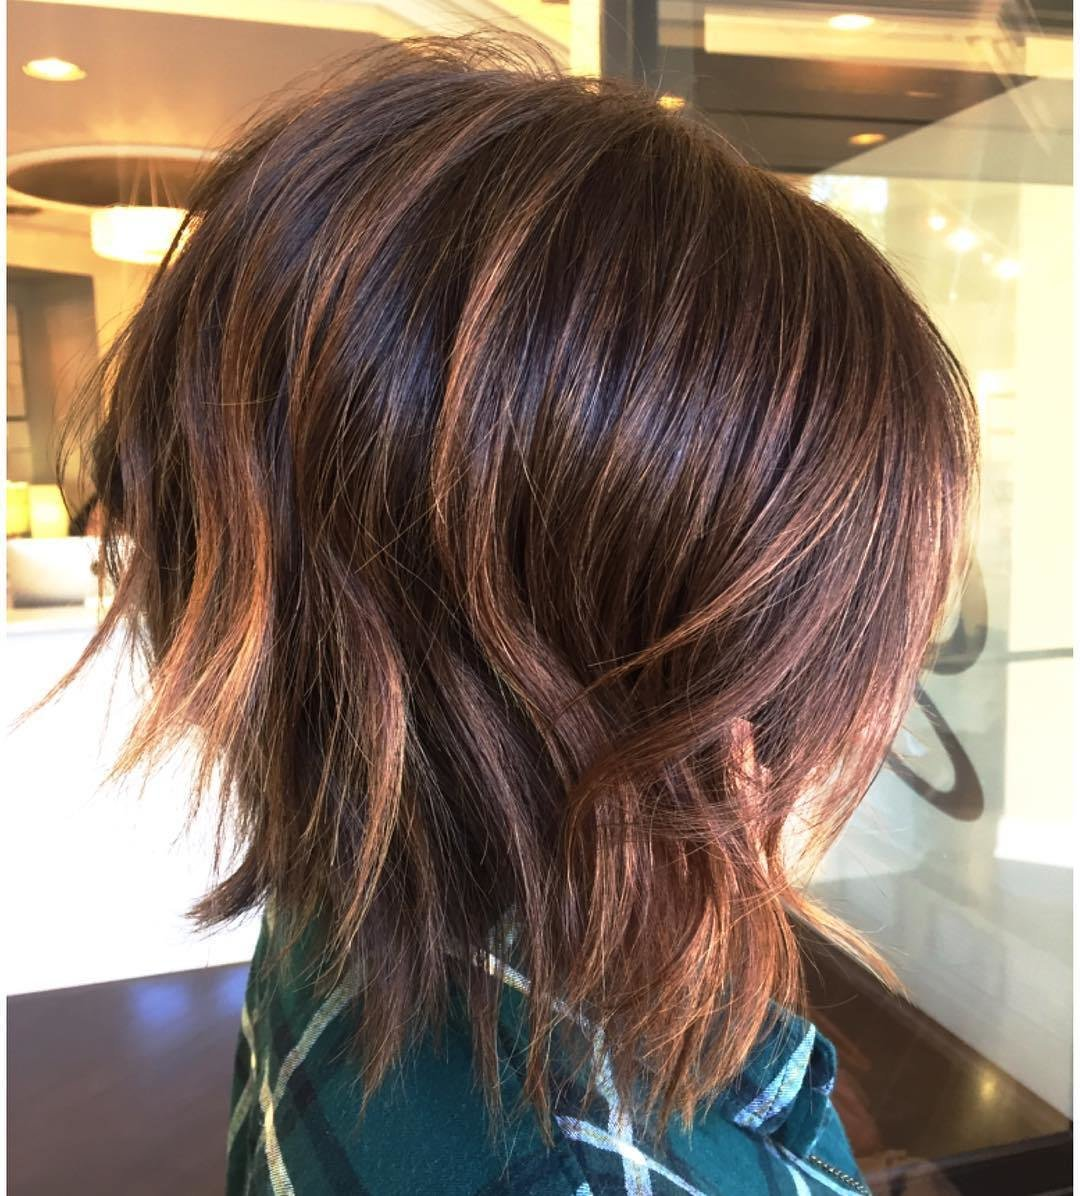 The Best 10 Super Cute And Easy Medium Hairstyles 2019 Pictures